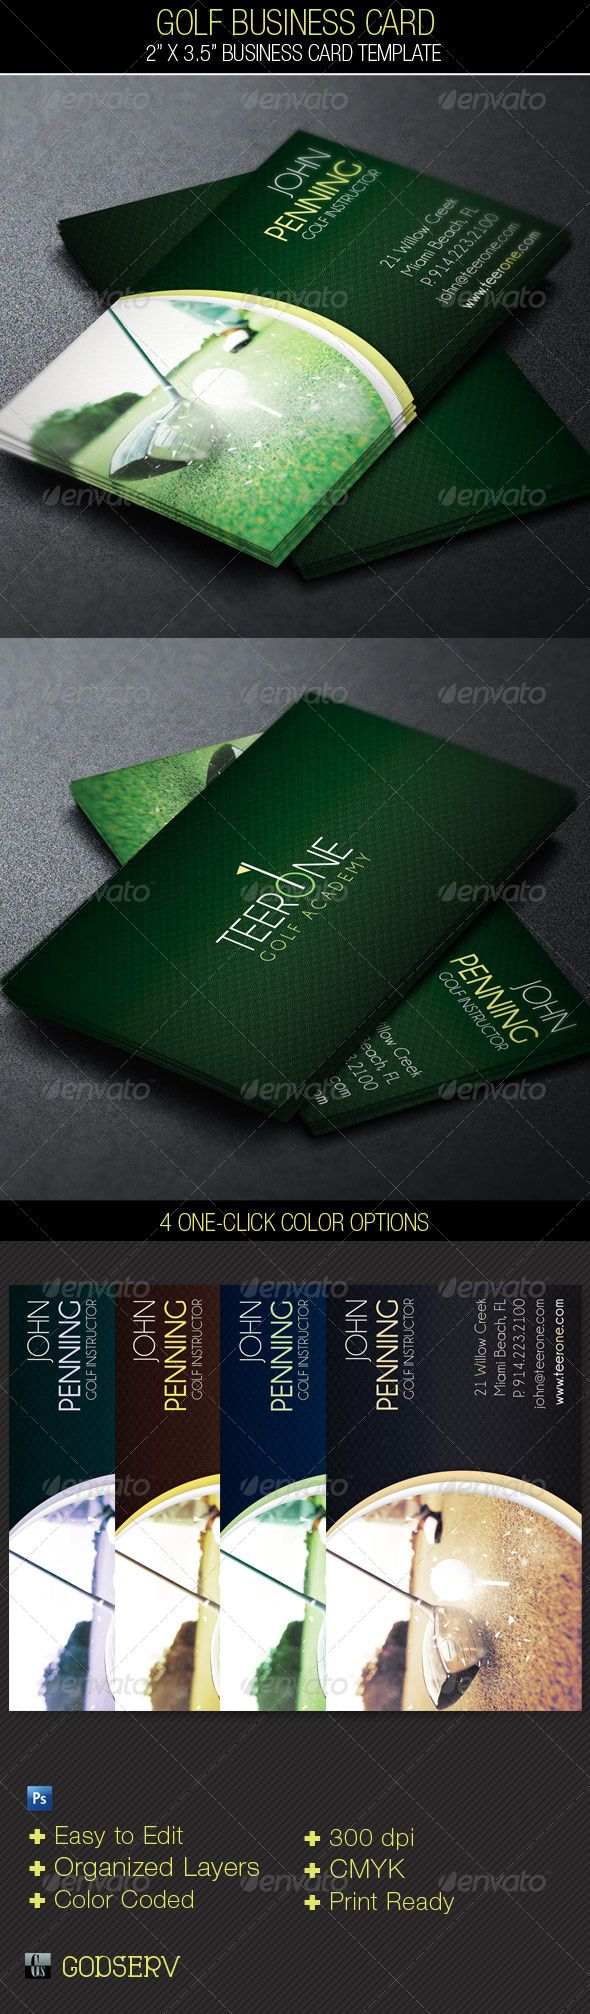 Golf Business Card Template | Card templates, Business cards and Golf